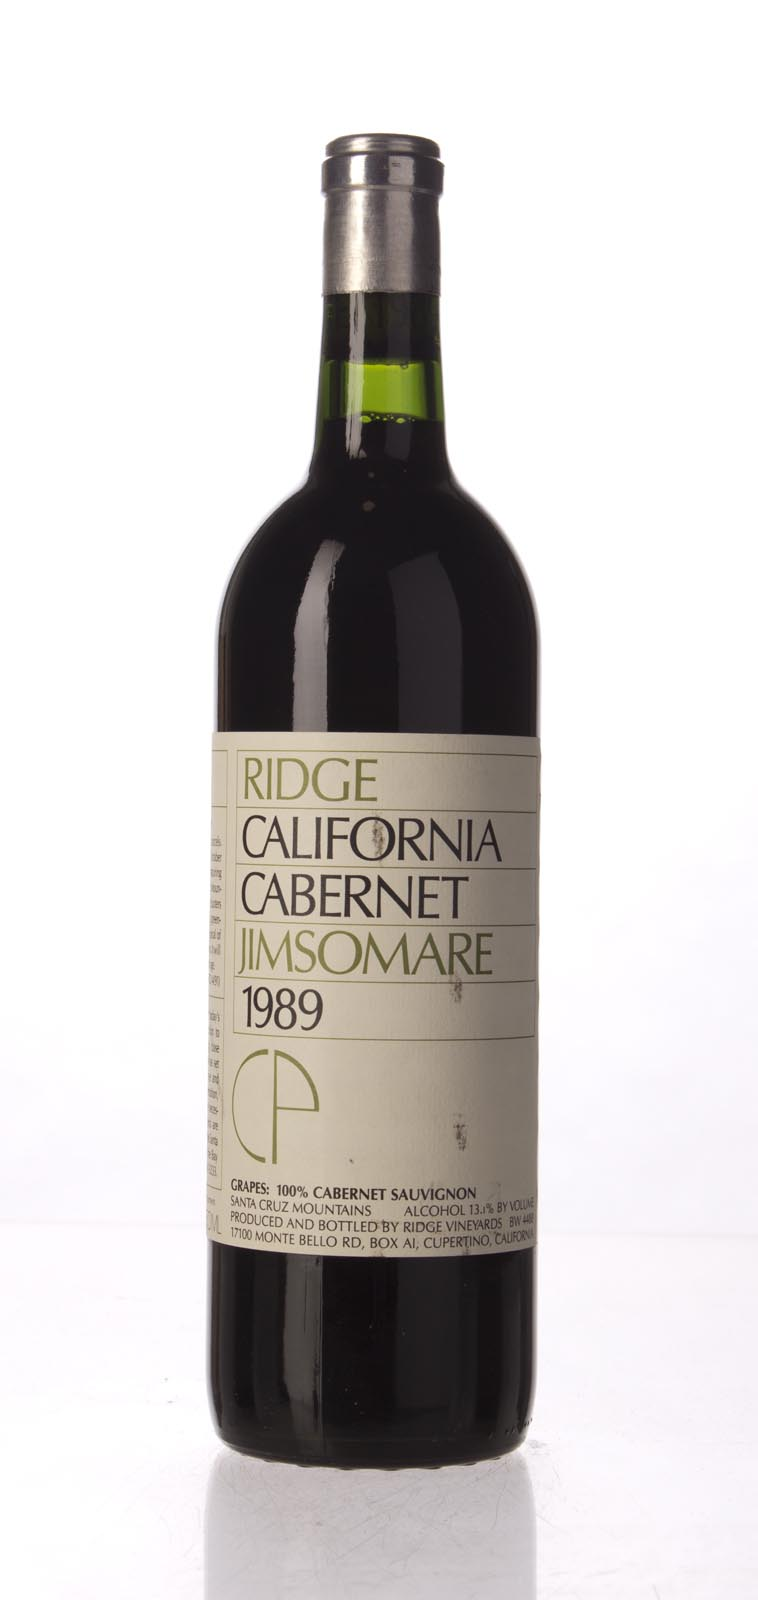 Ridge Cabernet Sauvignon Jimsomare 1989, 750mL () from The BPW - Merchants of rare and fine wines.